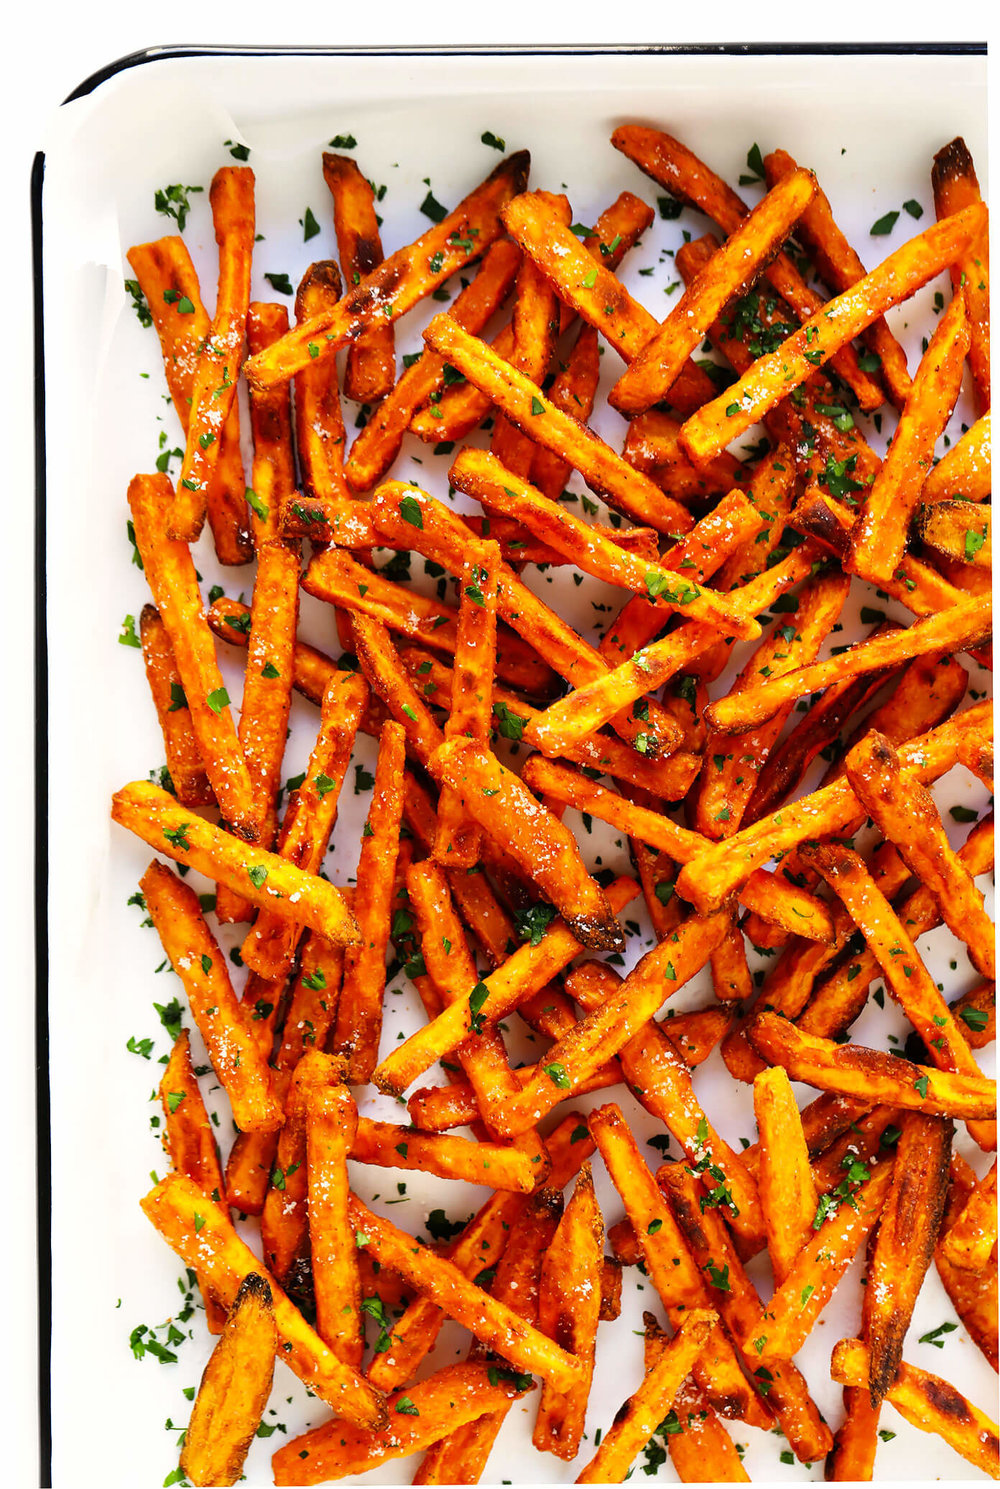 The-Best-Crispy-Baked-Sweet-Potato-Fries-Recipe-1.jpg